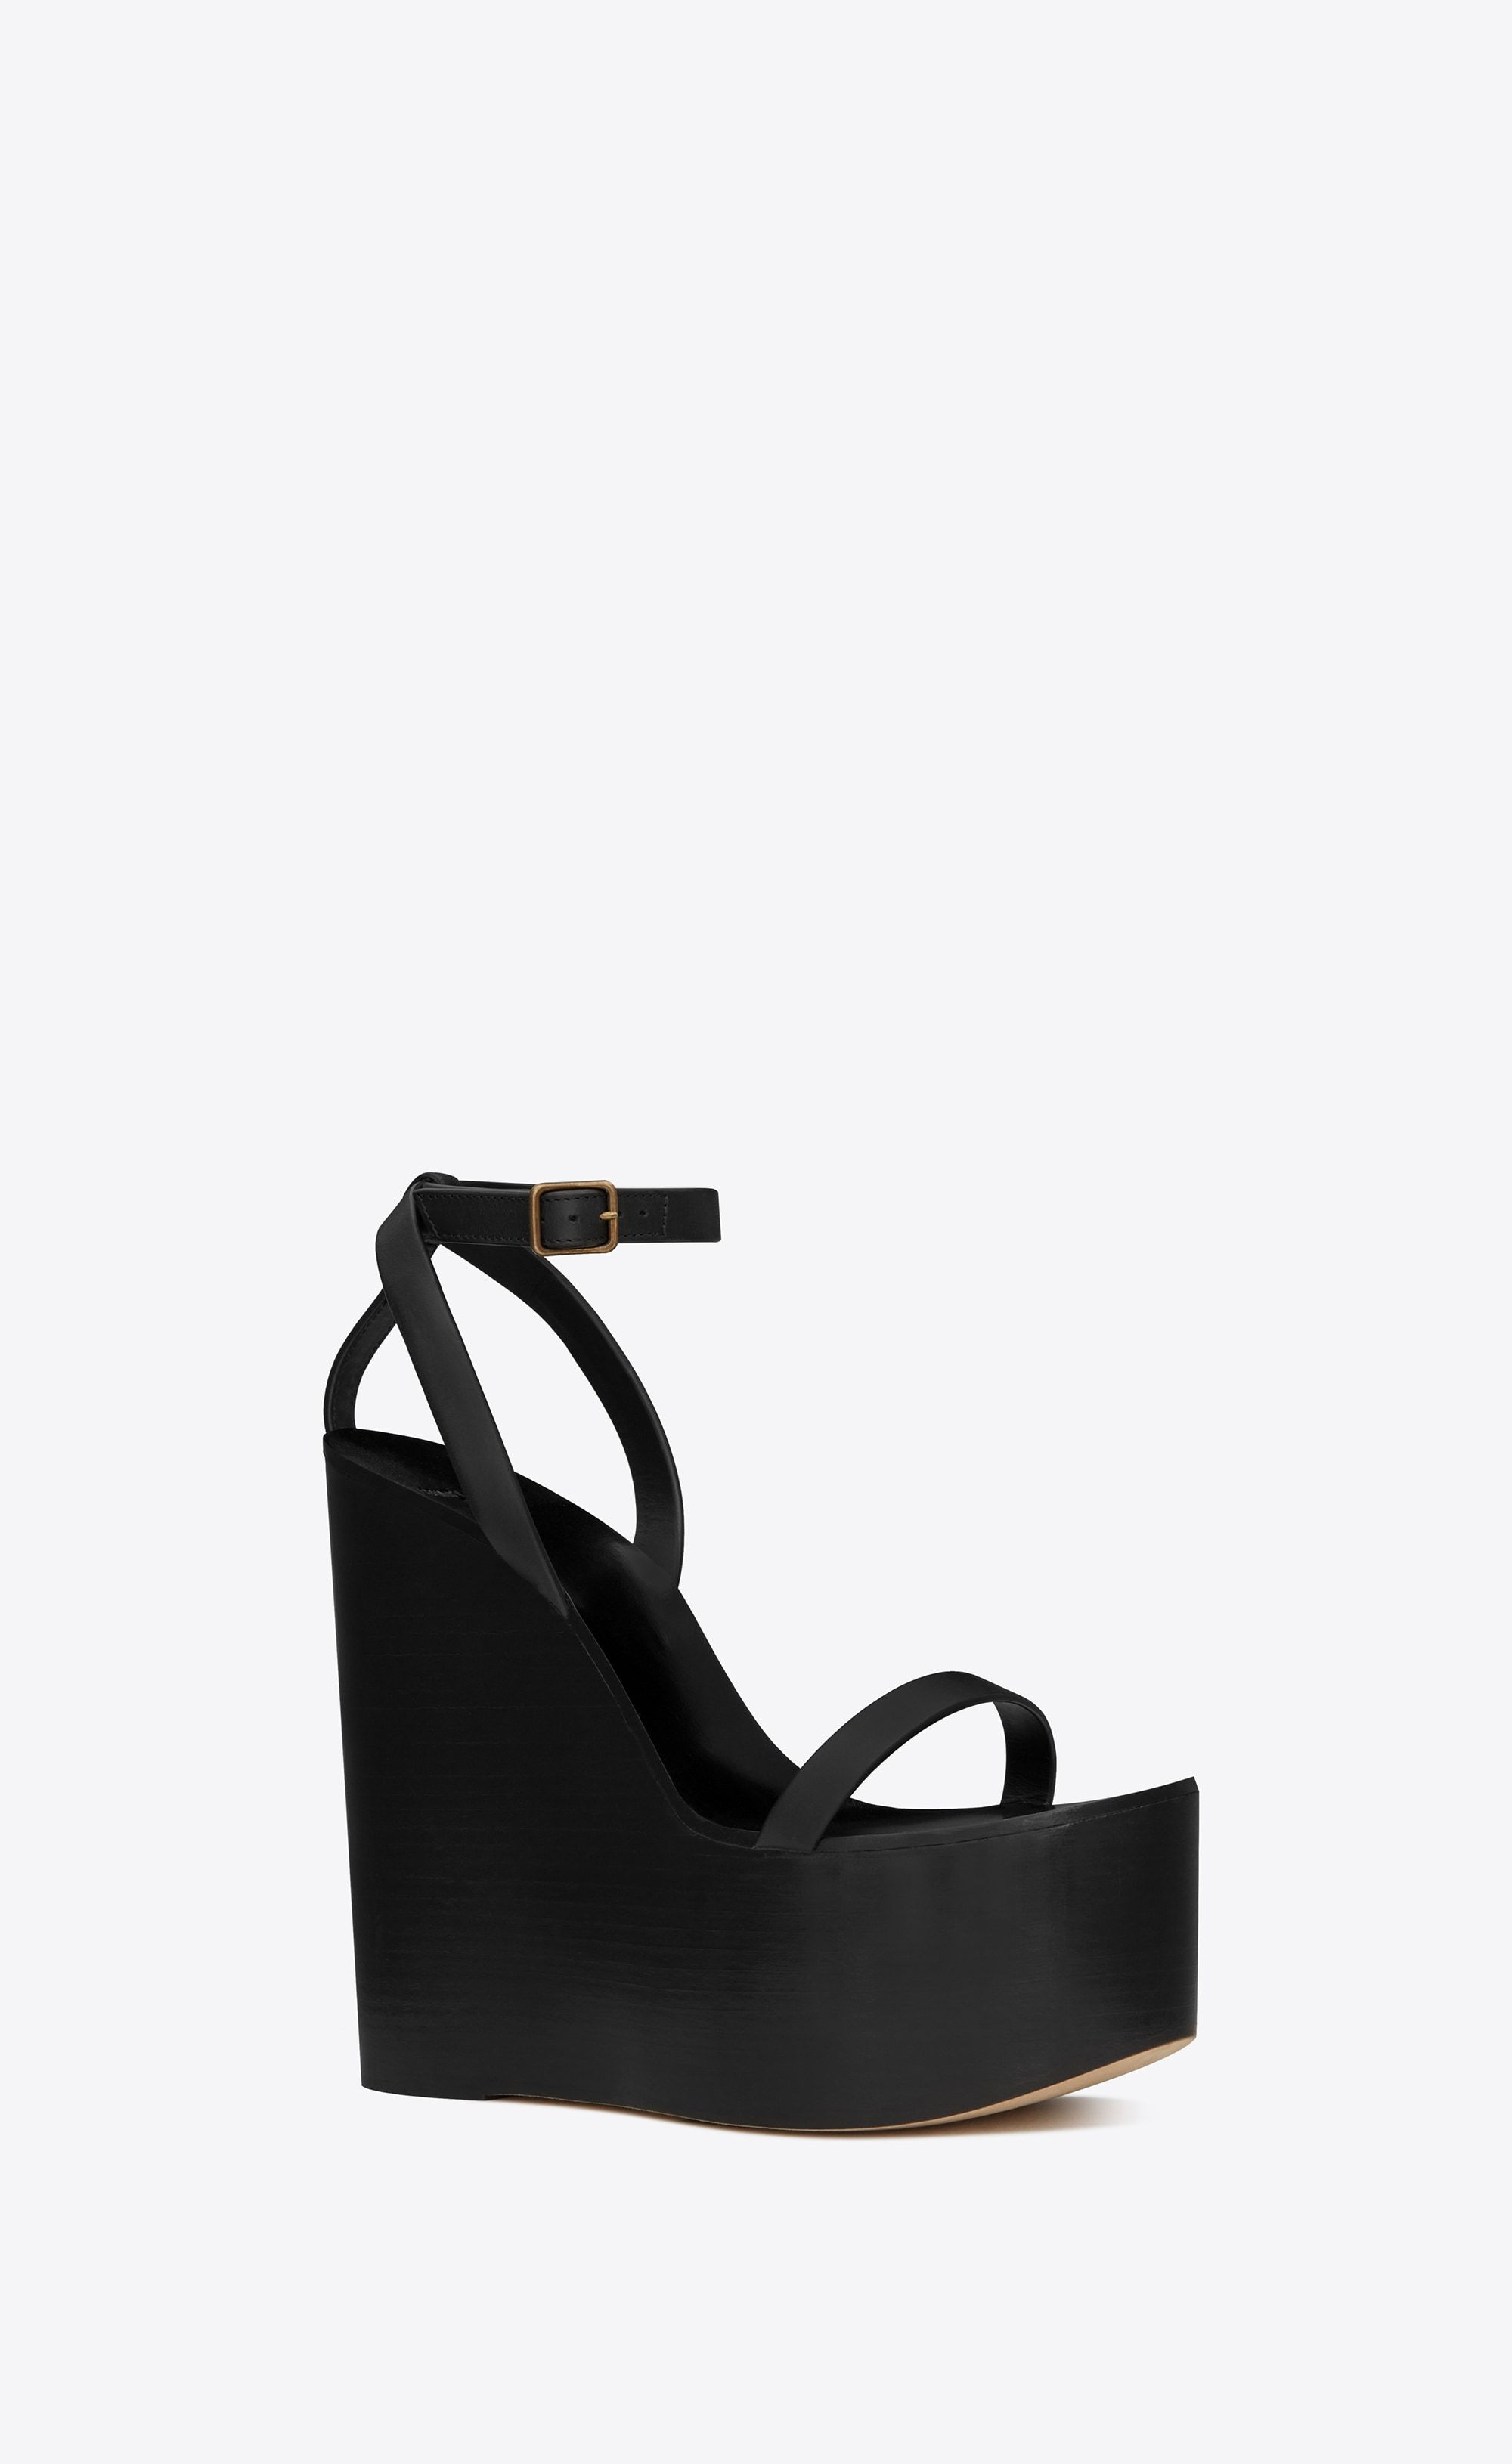 2f1694a6e0f Frida wedge sandal in leather in 2019 | SANDALS | Wedge sandals ...